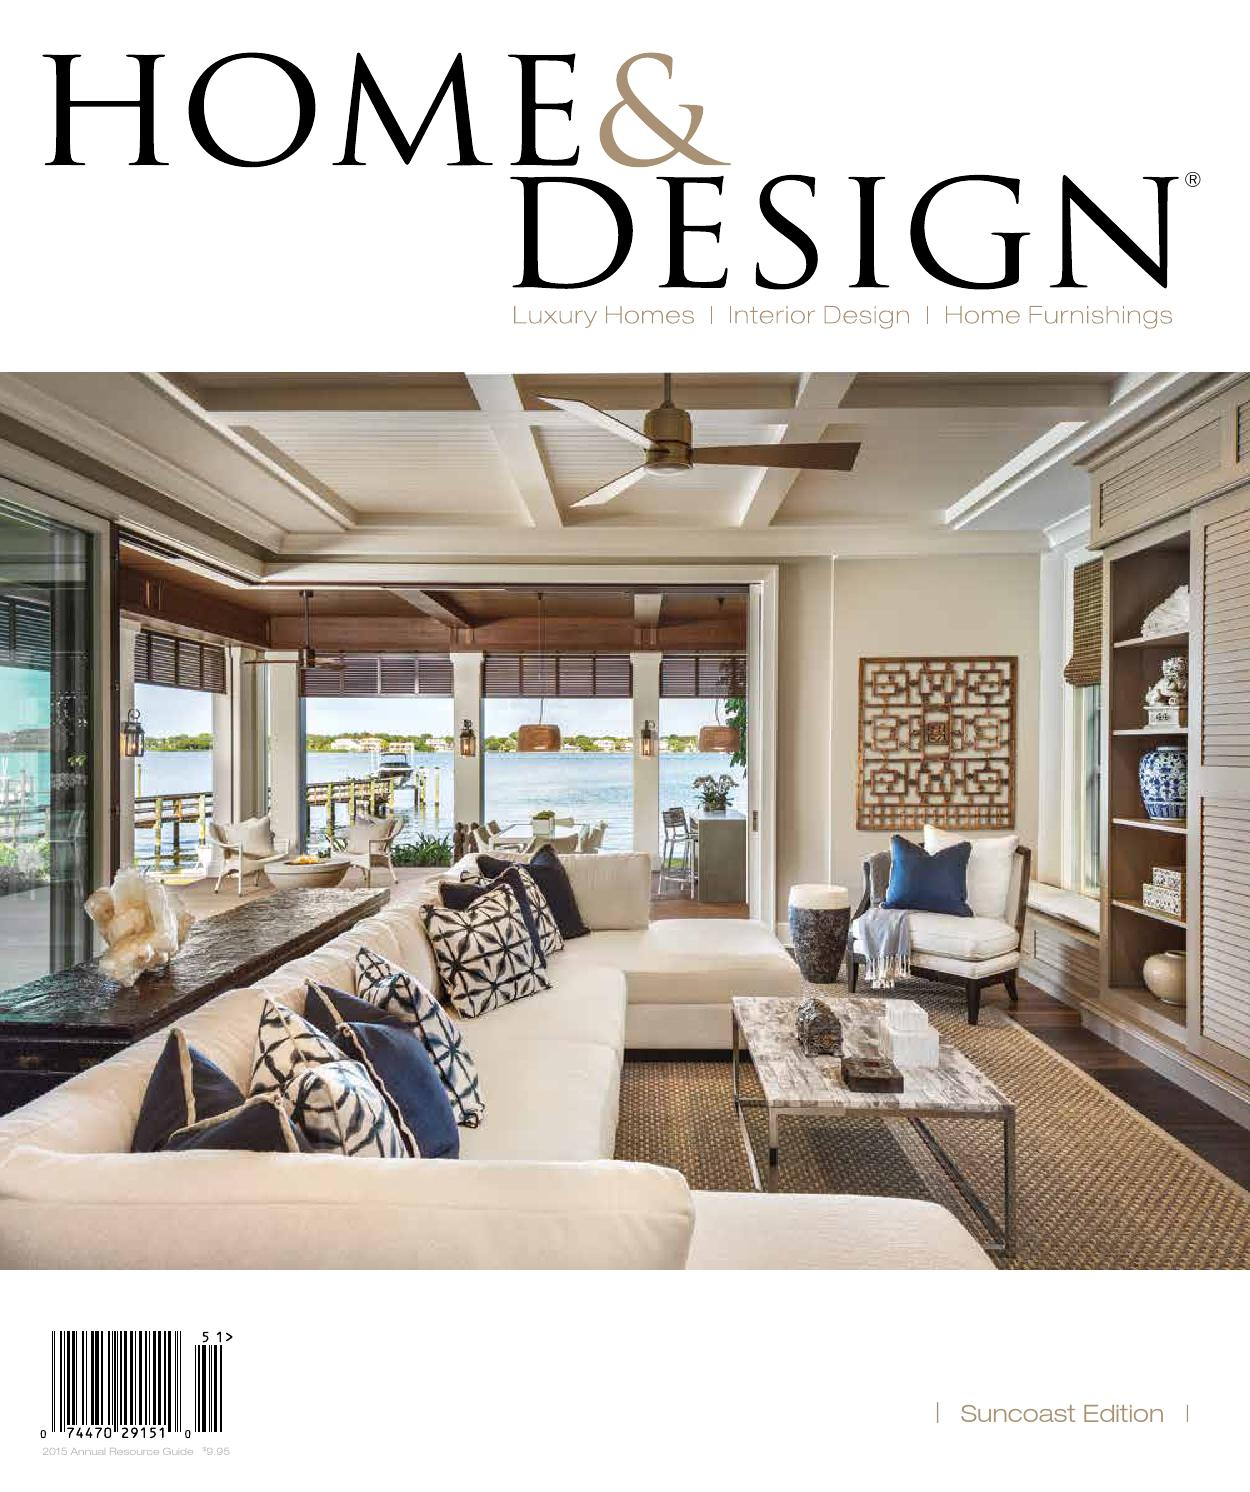 home amp design magazine annual resource guide 2015 florida stucco home designs best home design and